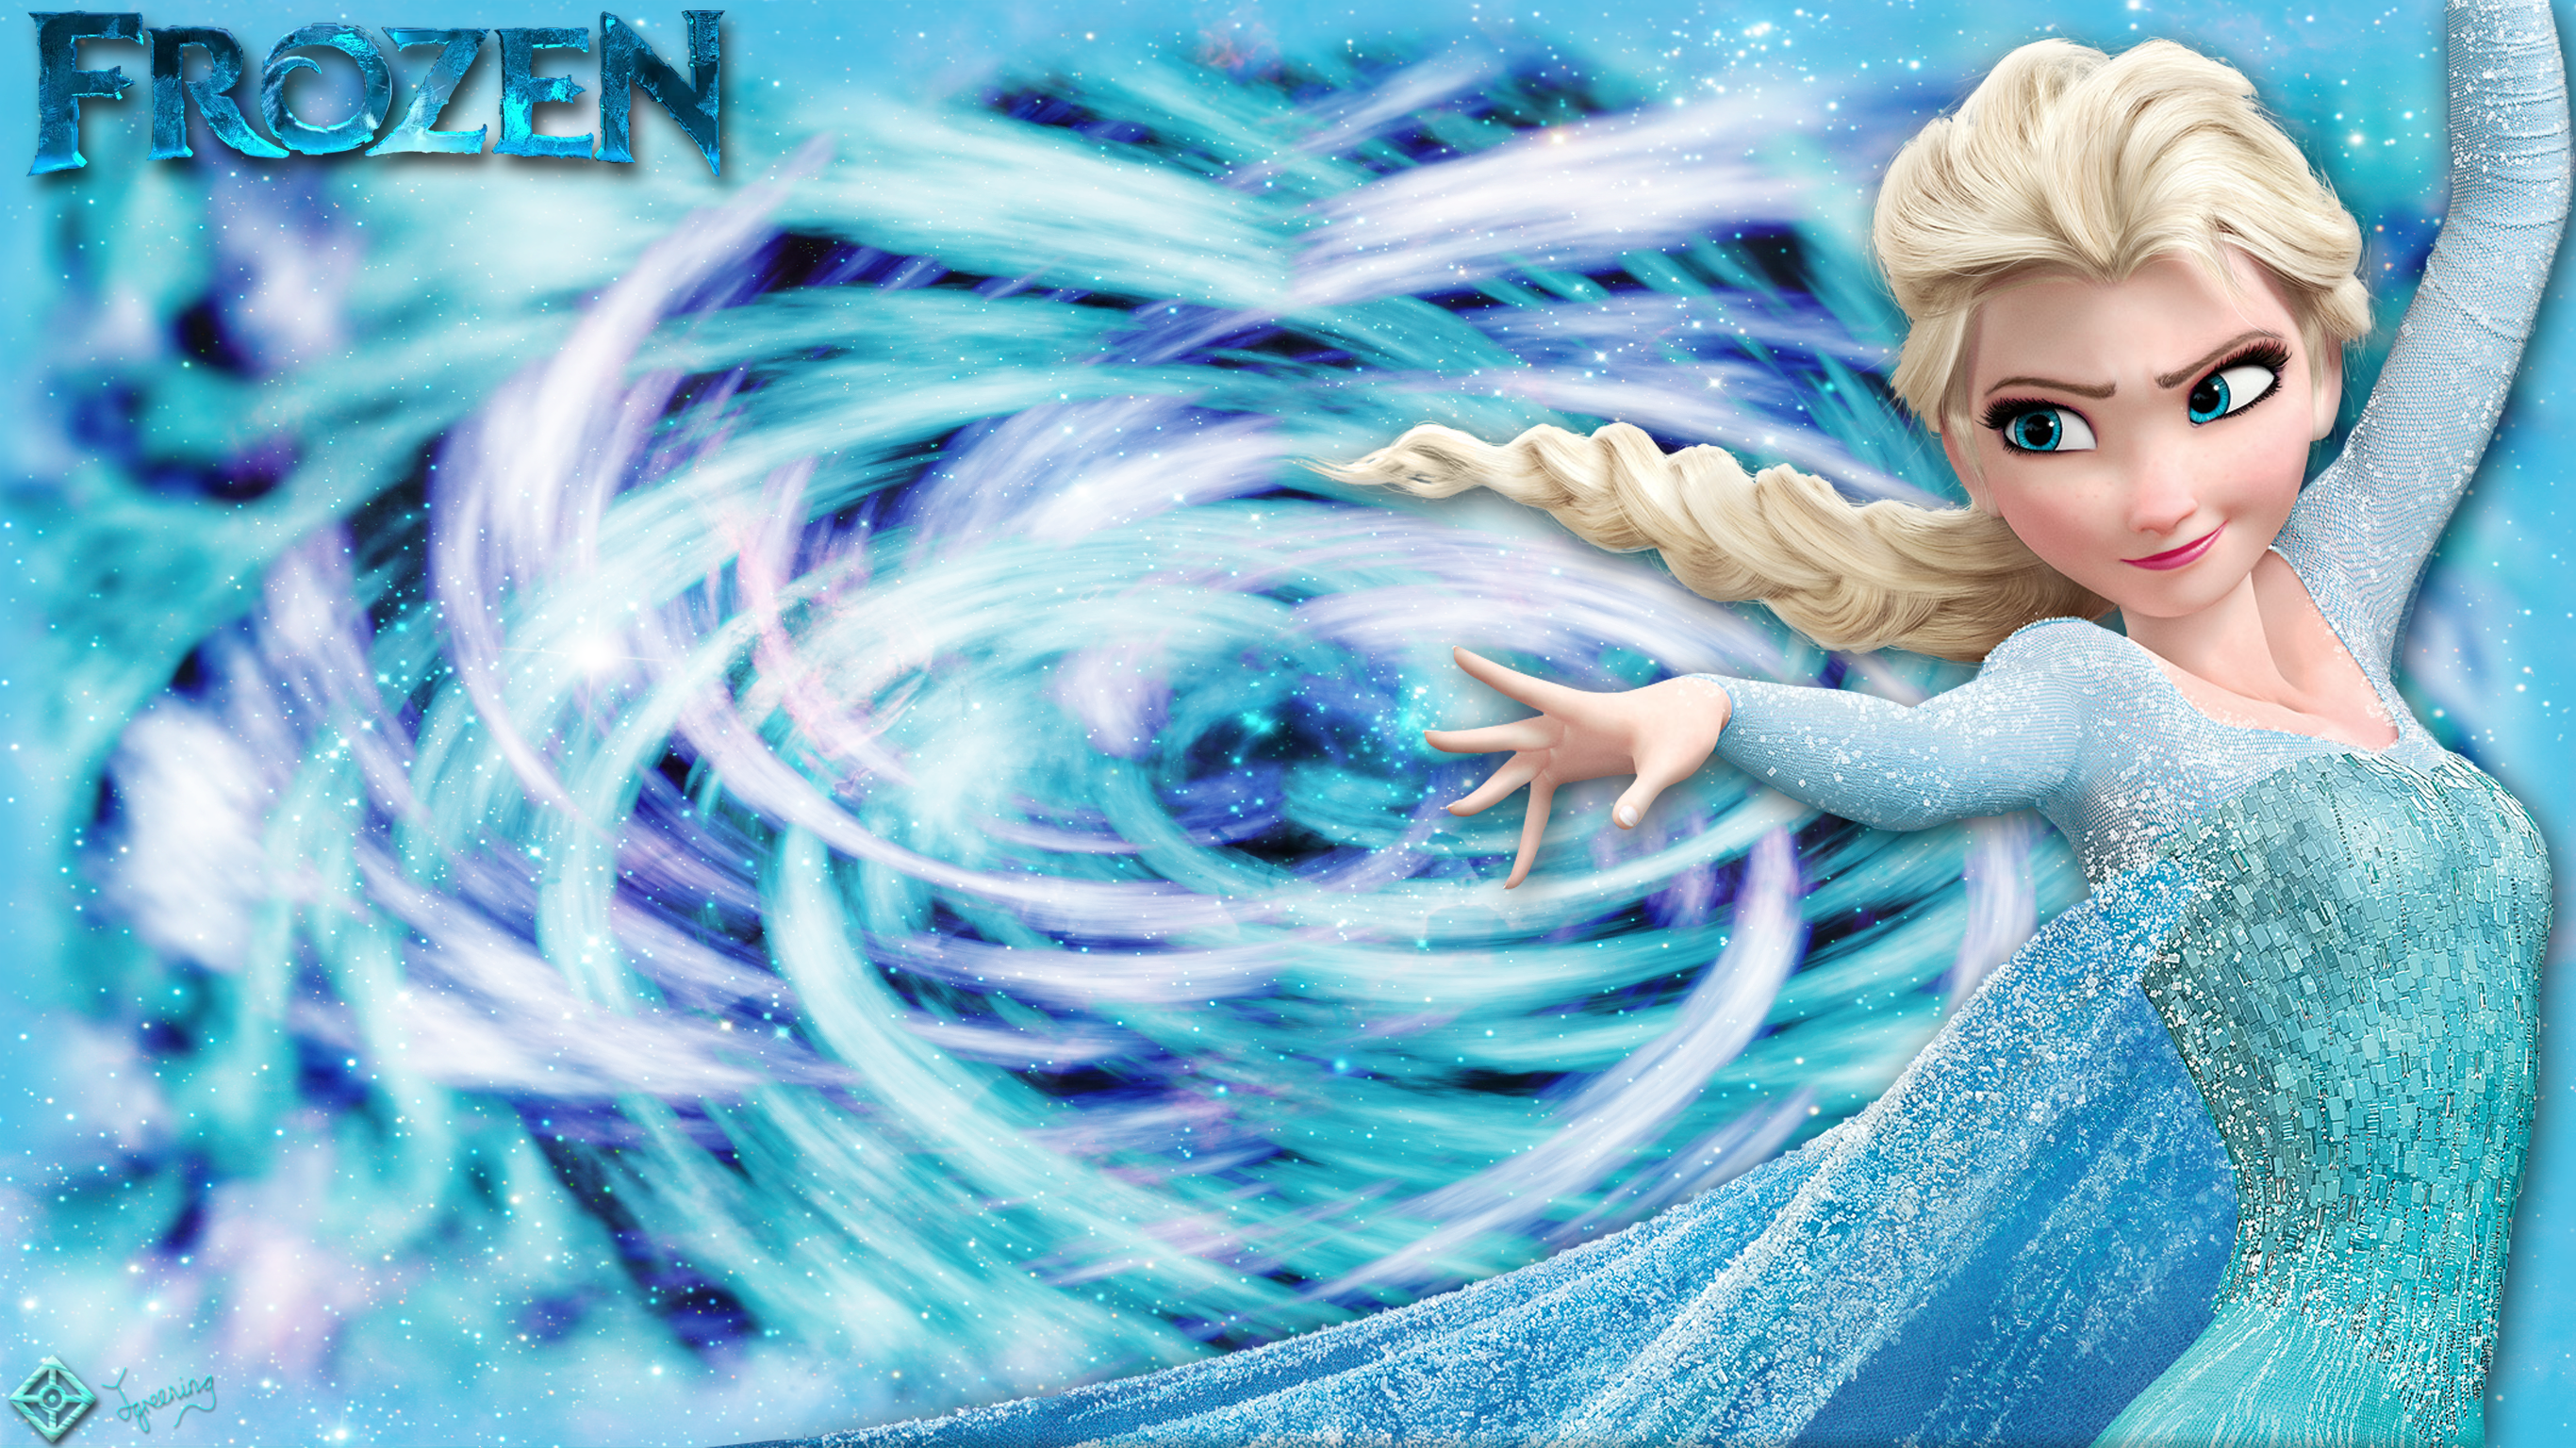 312 frozen hd wallpapers | background images - wallpaper abyss - page 2